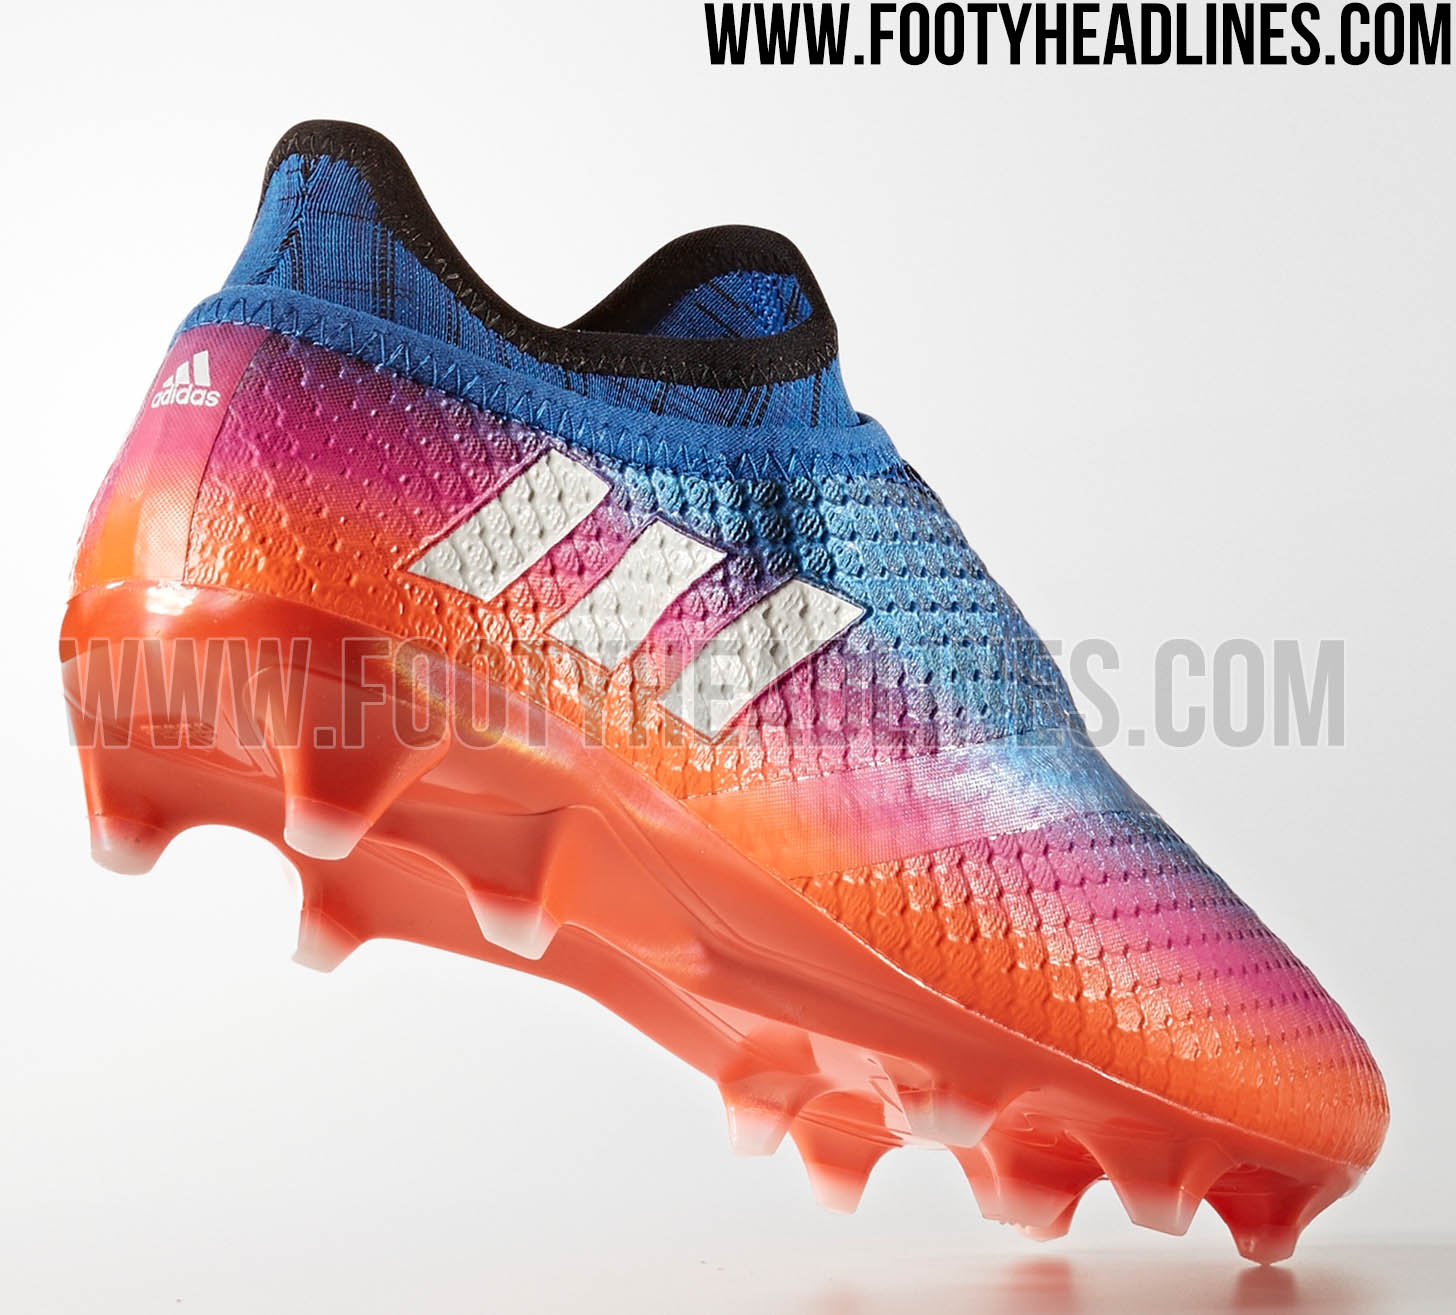 messi new boots 2017